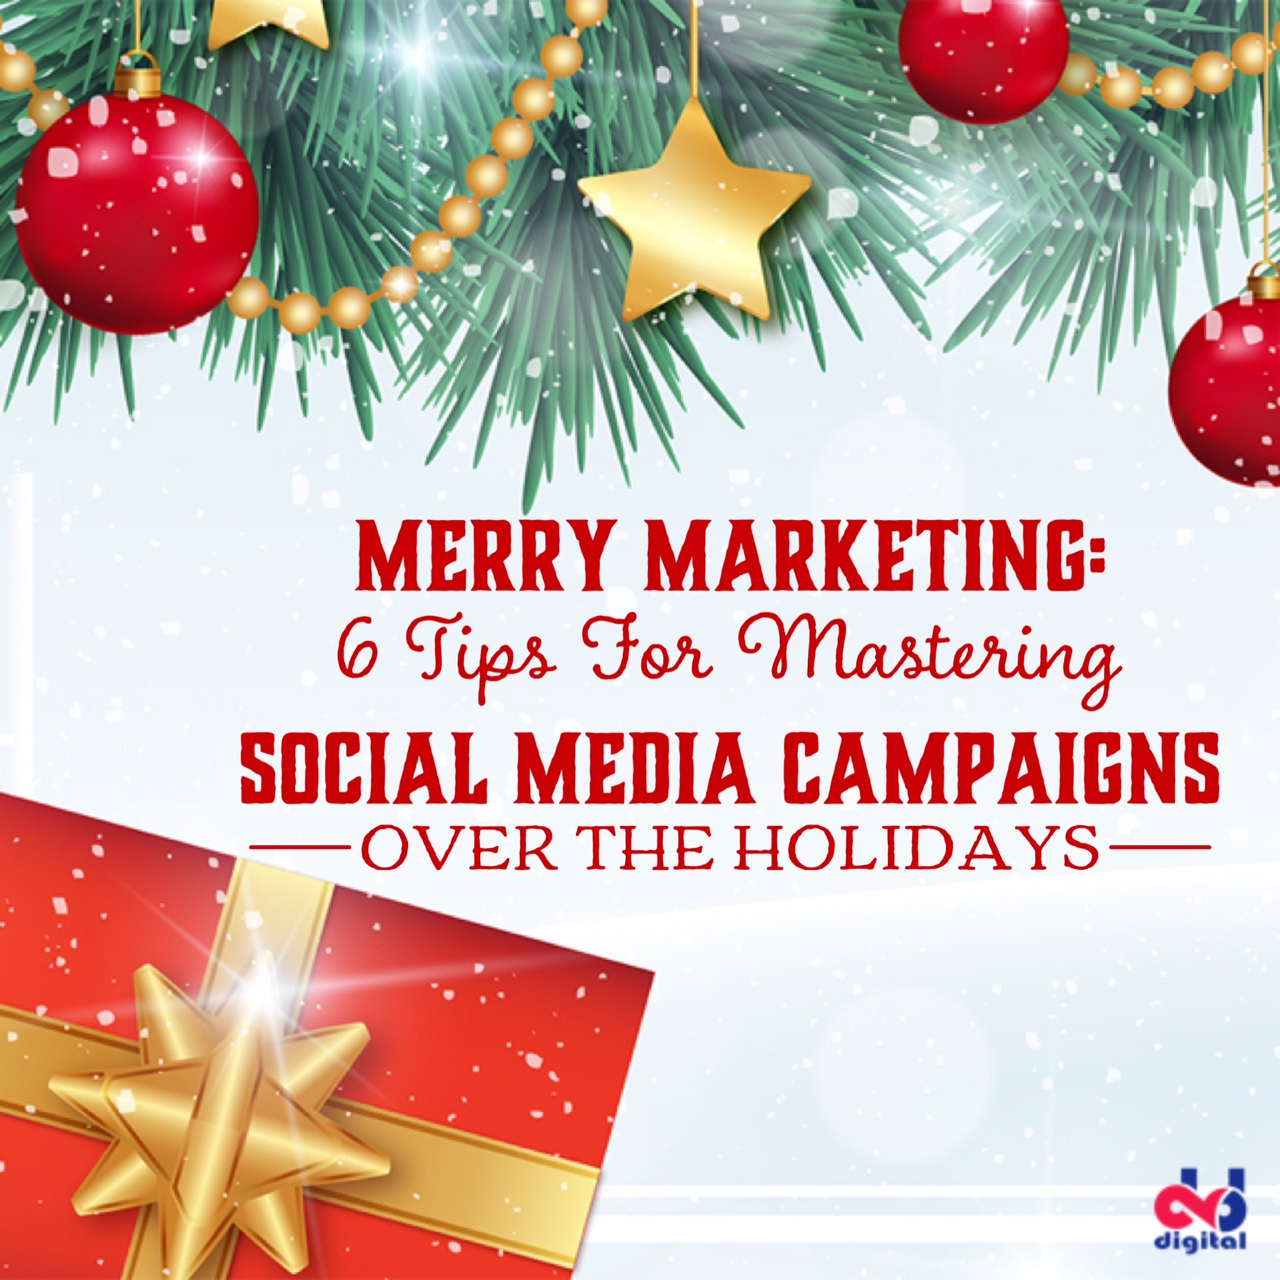 Merry Marketing: 6 Tips For Mastering Social Media Campaigns Over The Holidays